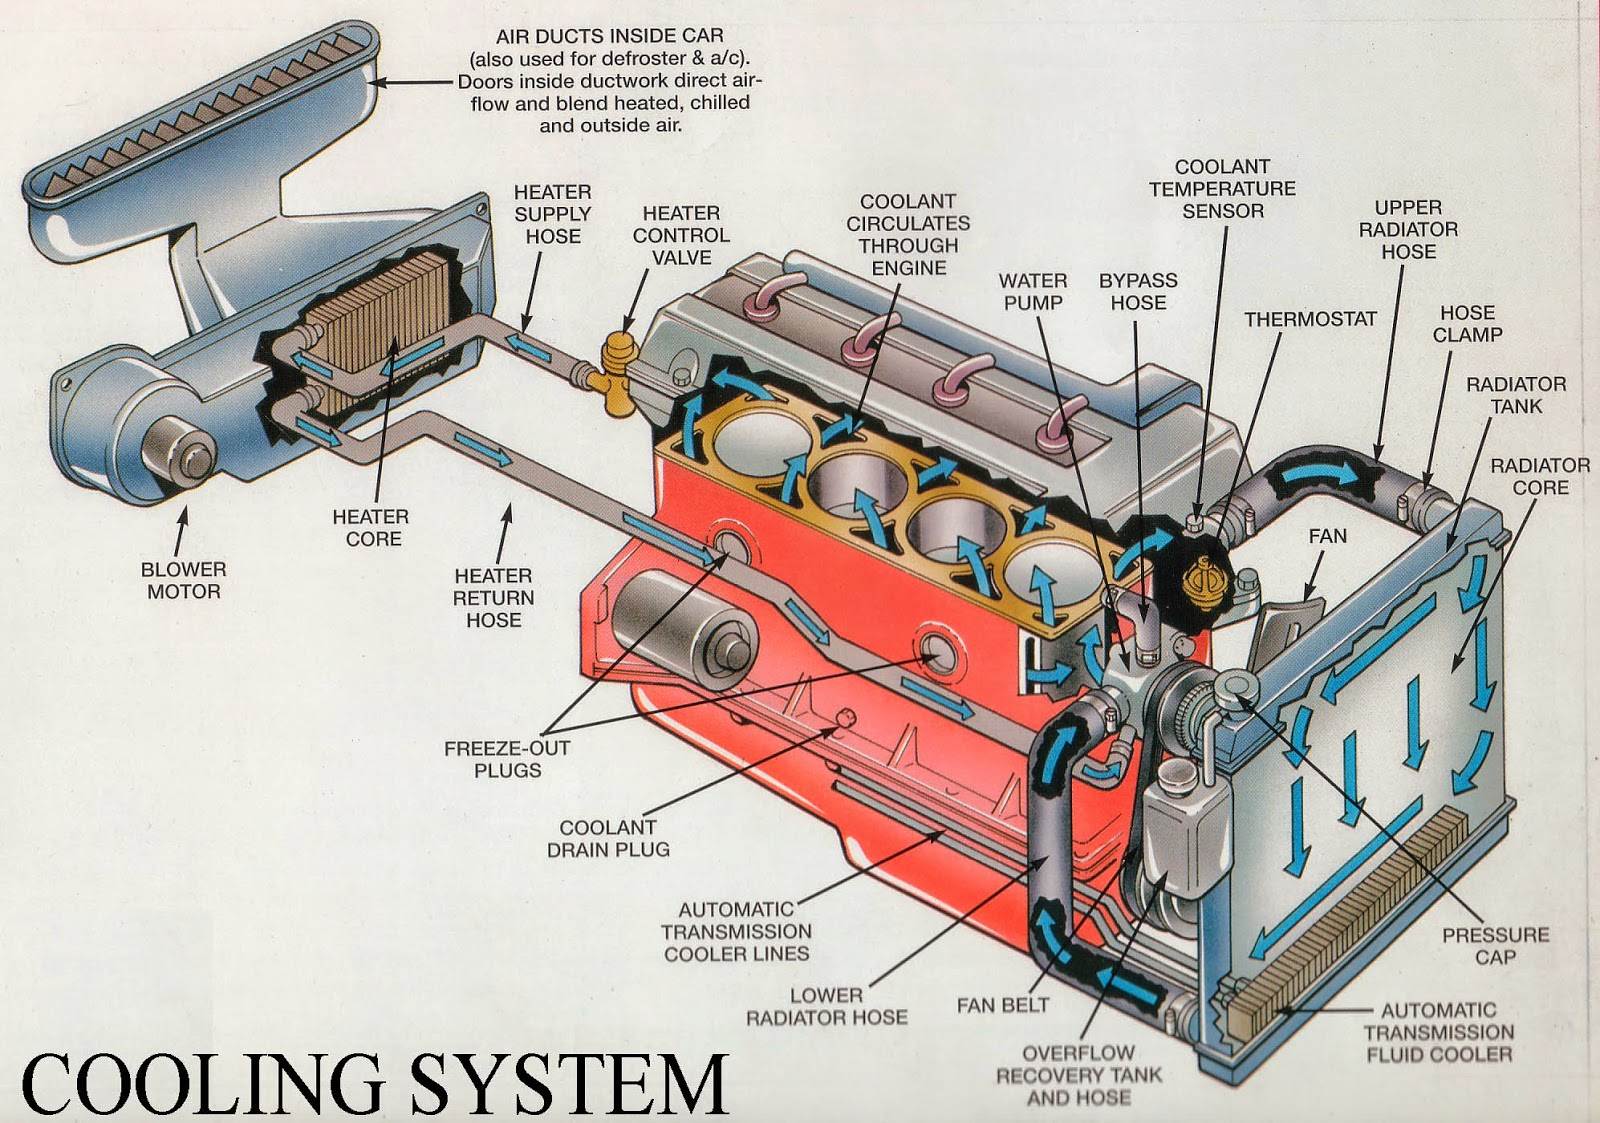 Automotive Cooling Systems and Emissions